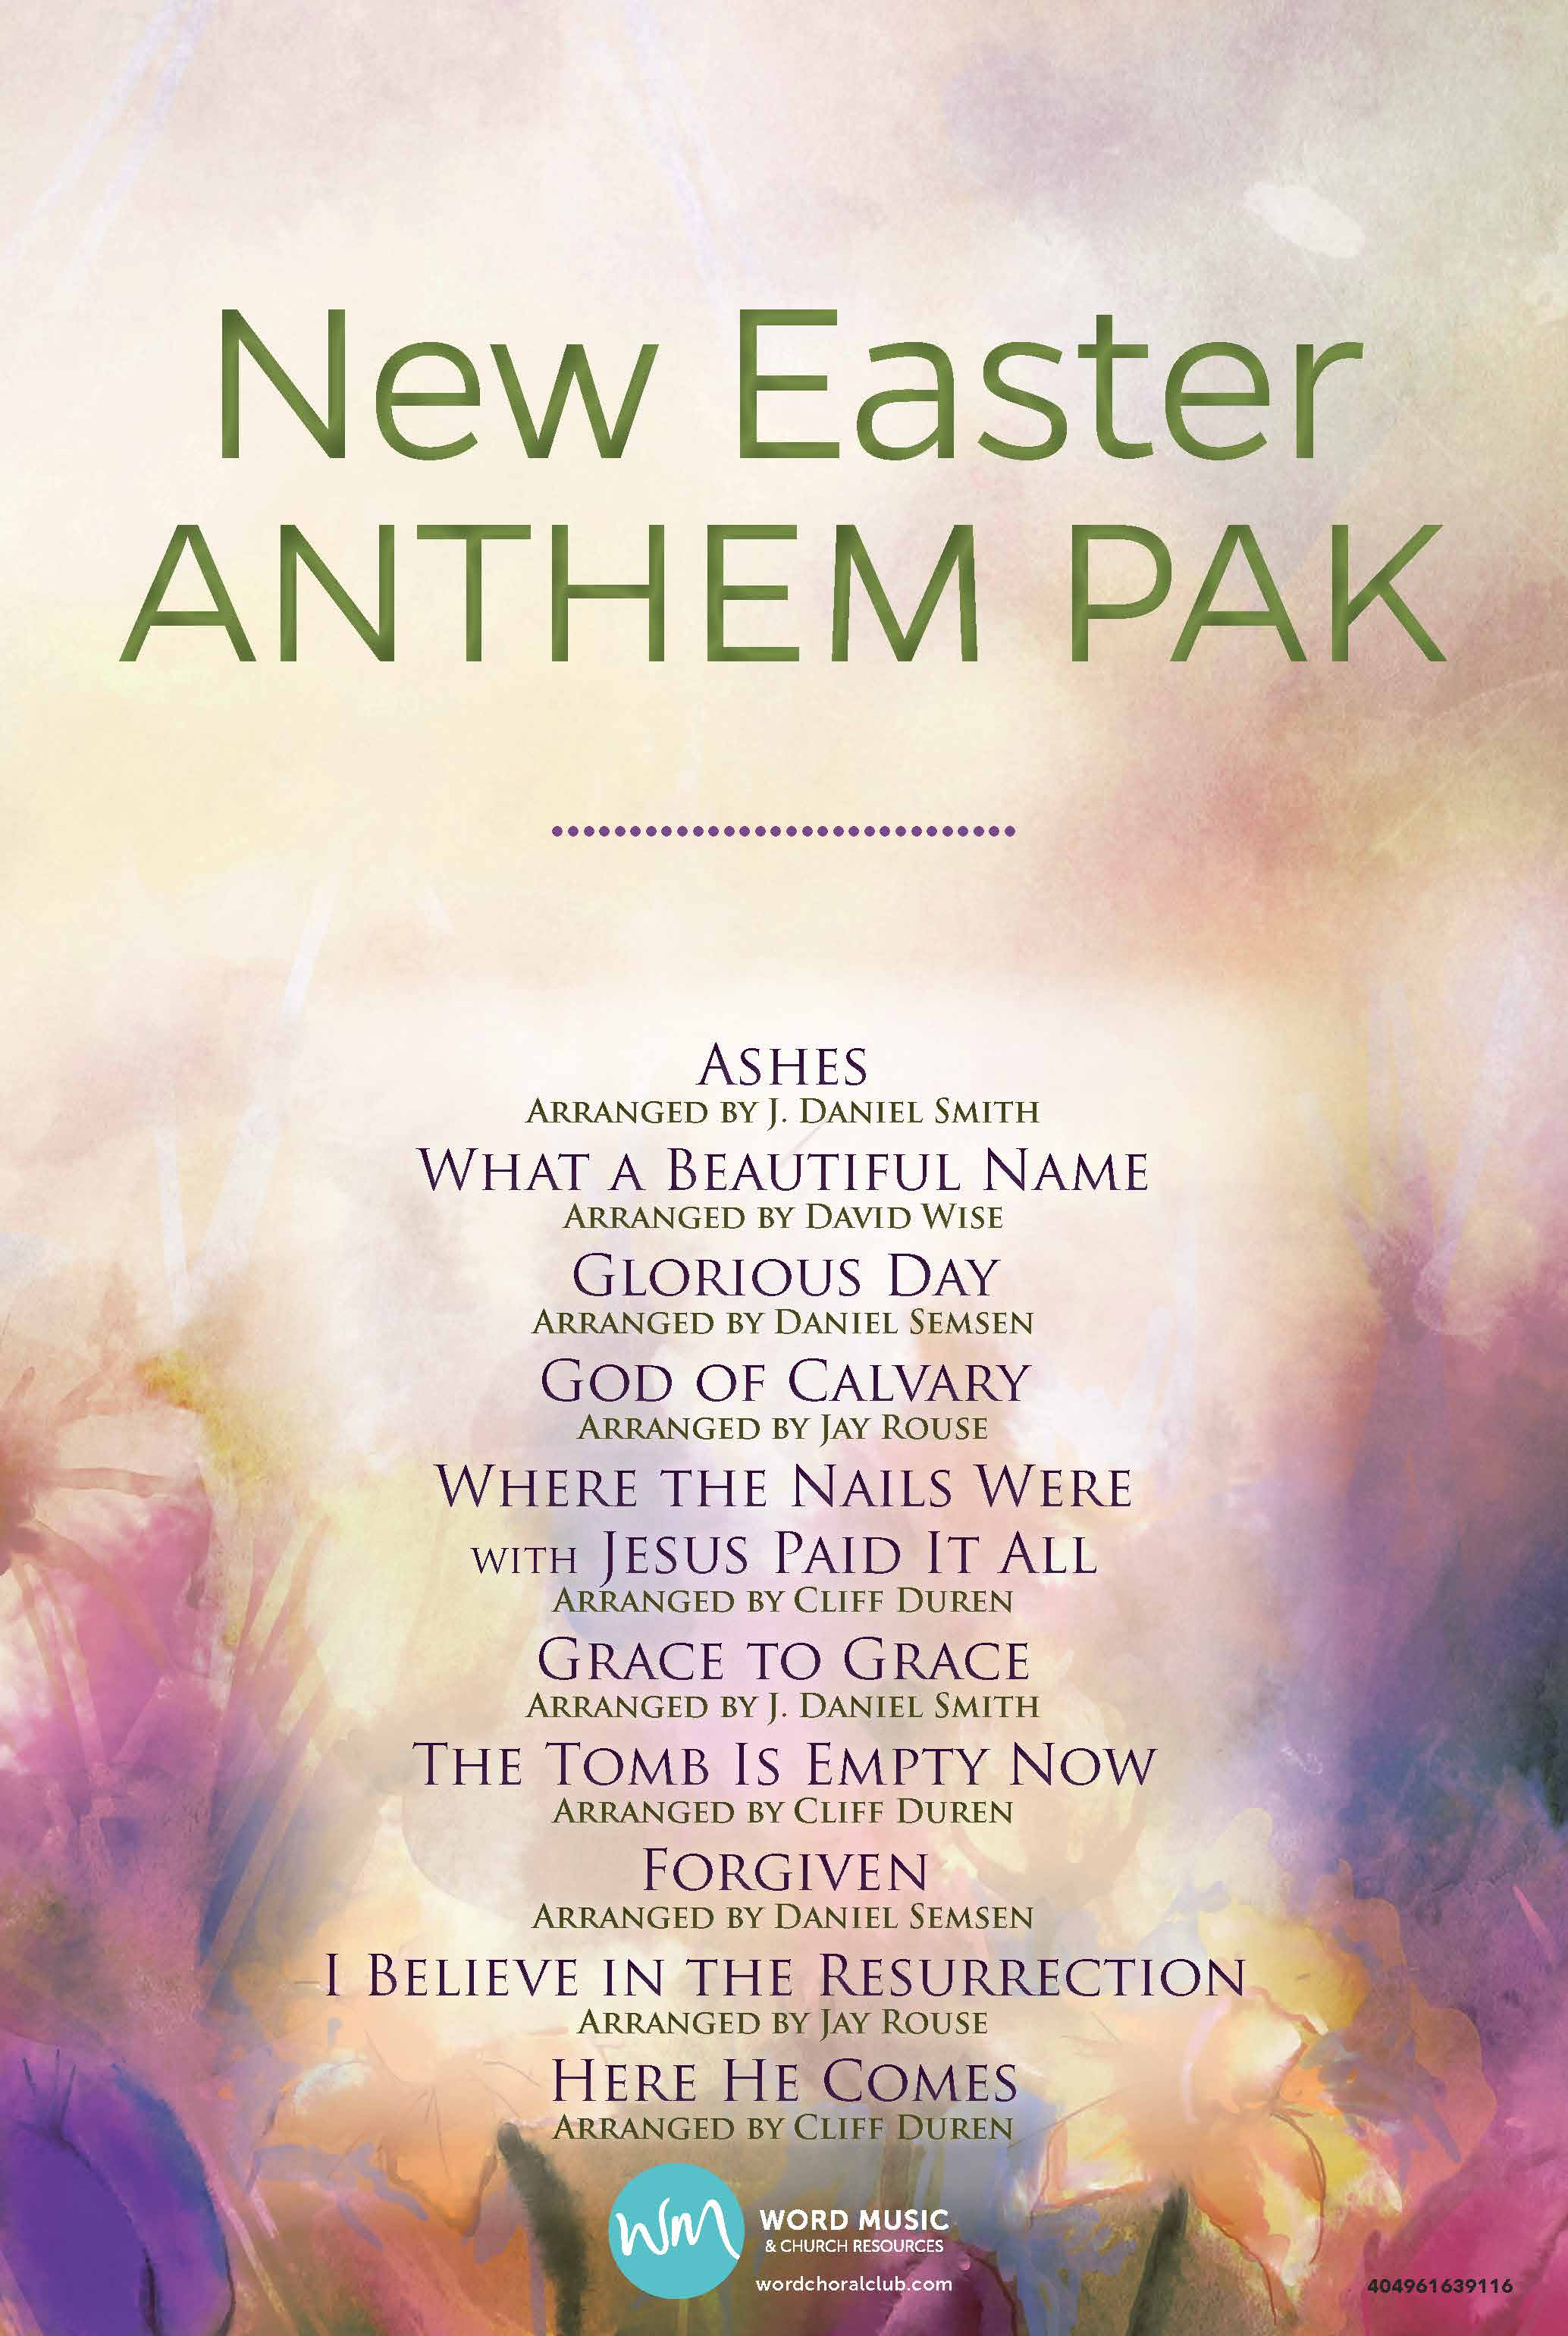 New Easter Anthem Pak Vol 1